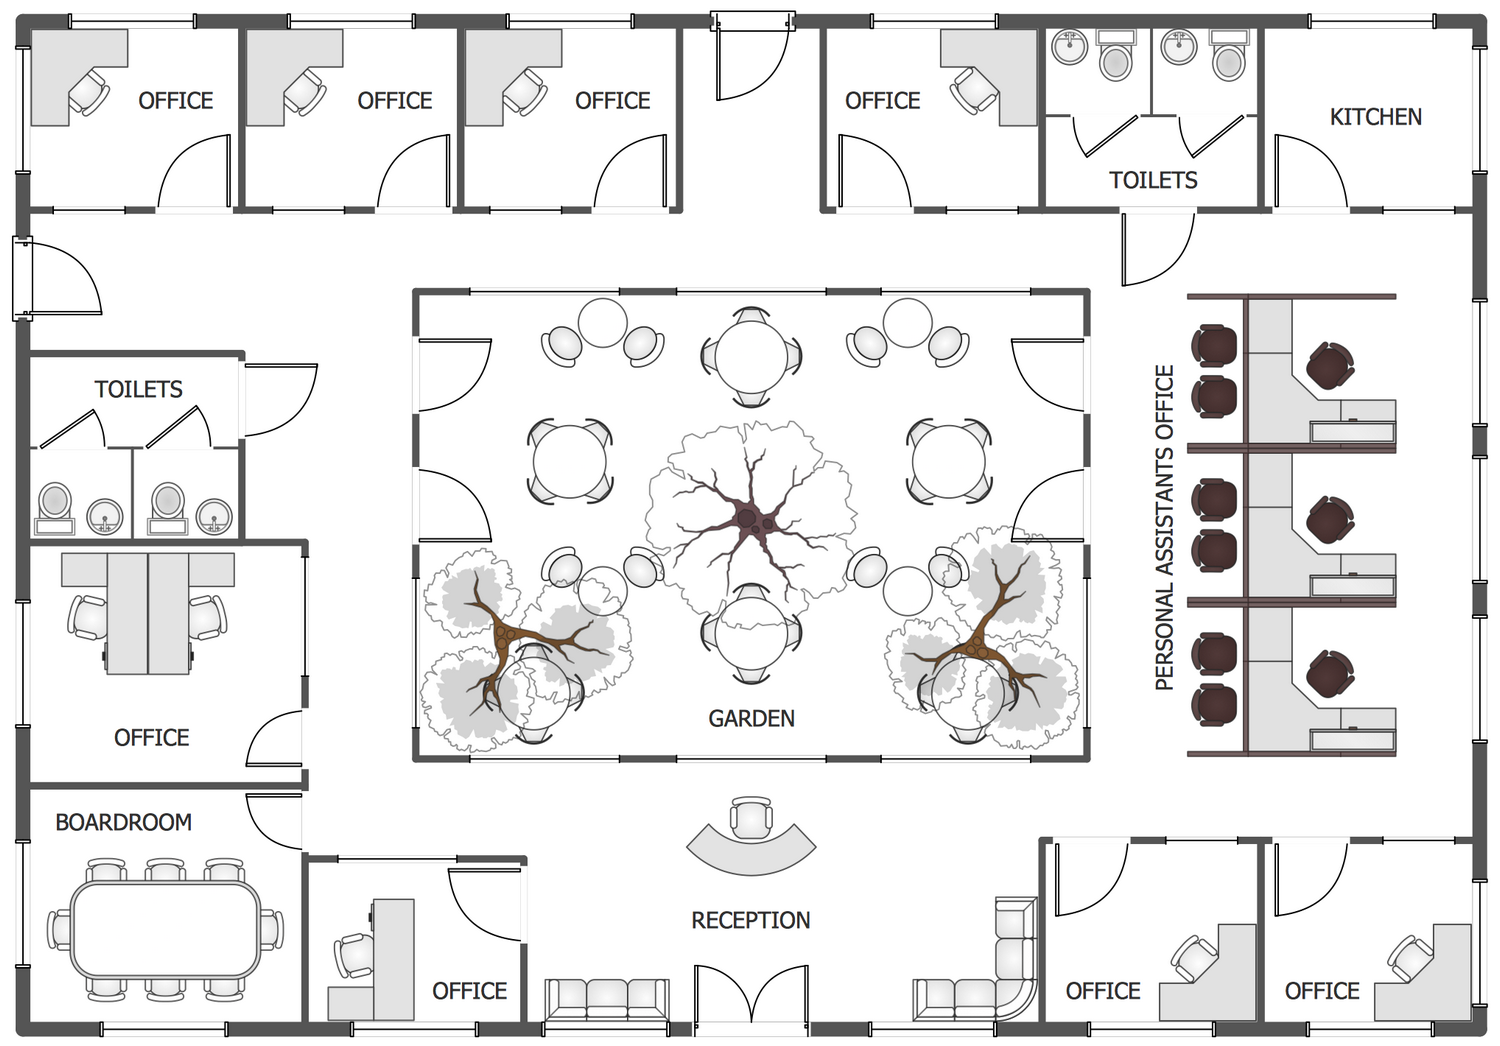 Office layout plans solution for Office floor plan samples